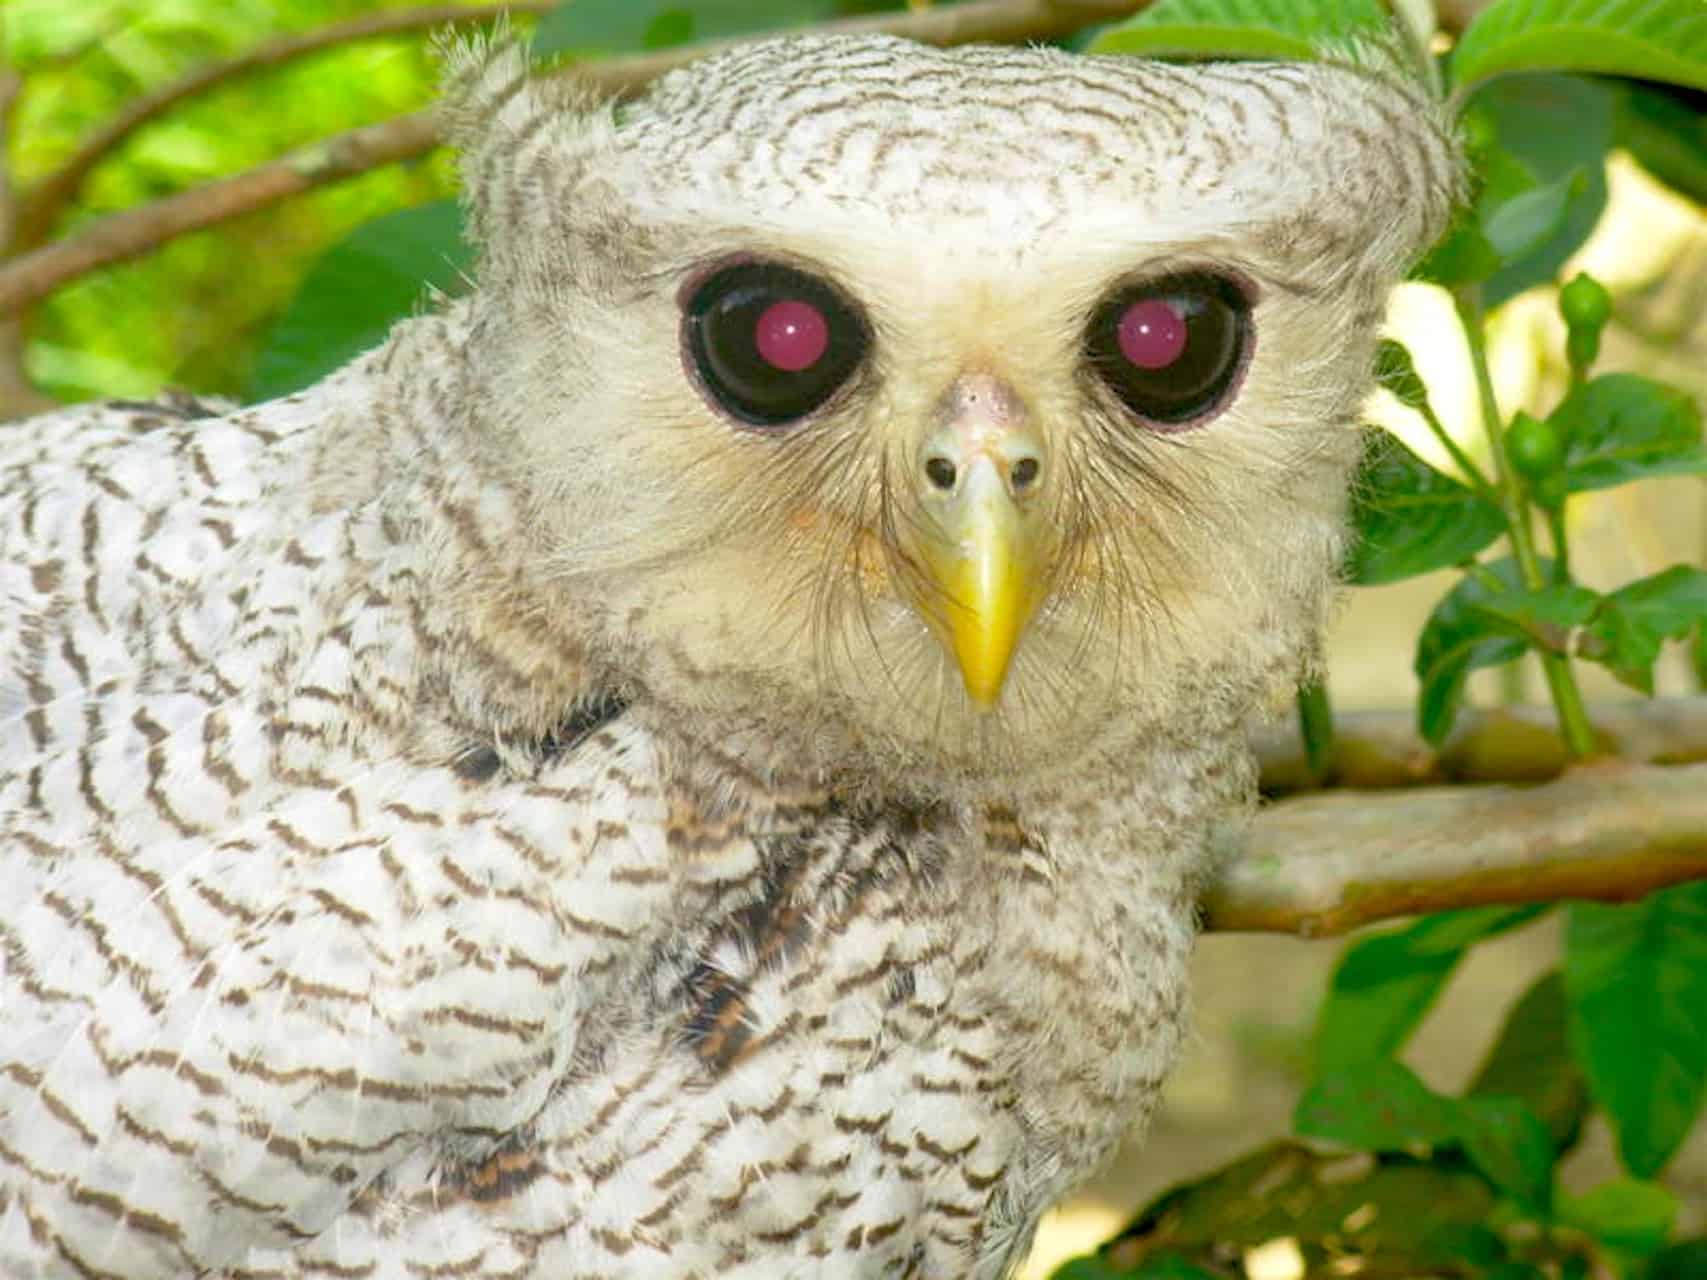 OWL IN GUNUNG LEUSER NATIONAL PARK - BUKIT LAWANG JUNGLE TREKKING BY SUMATRA ECOTRAVEL